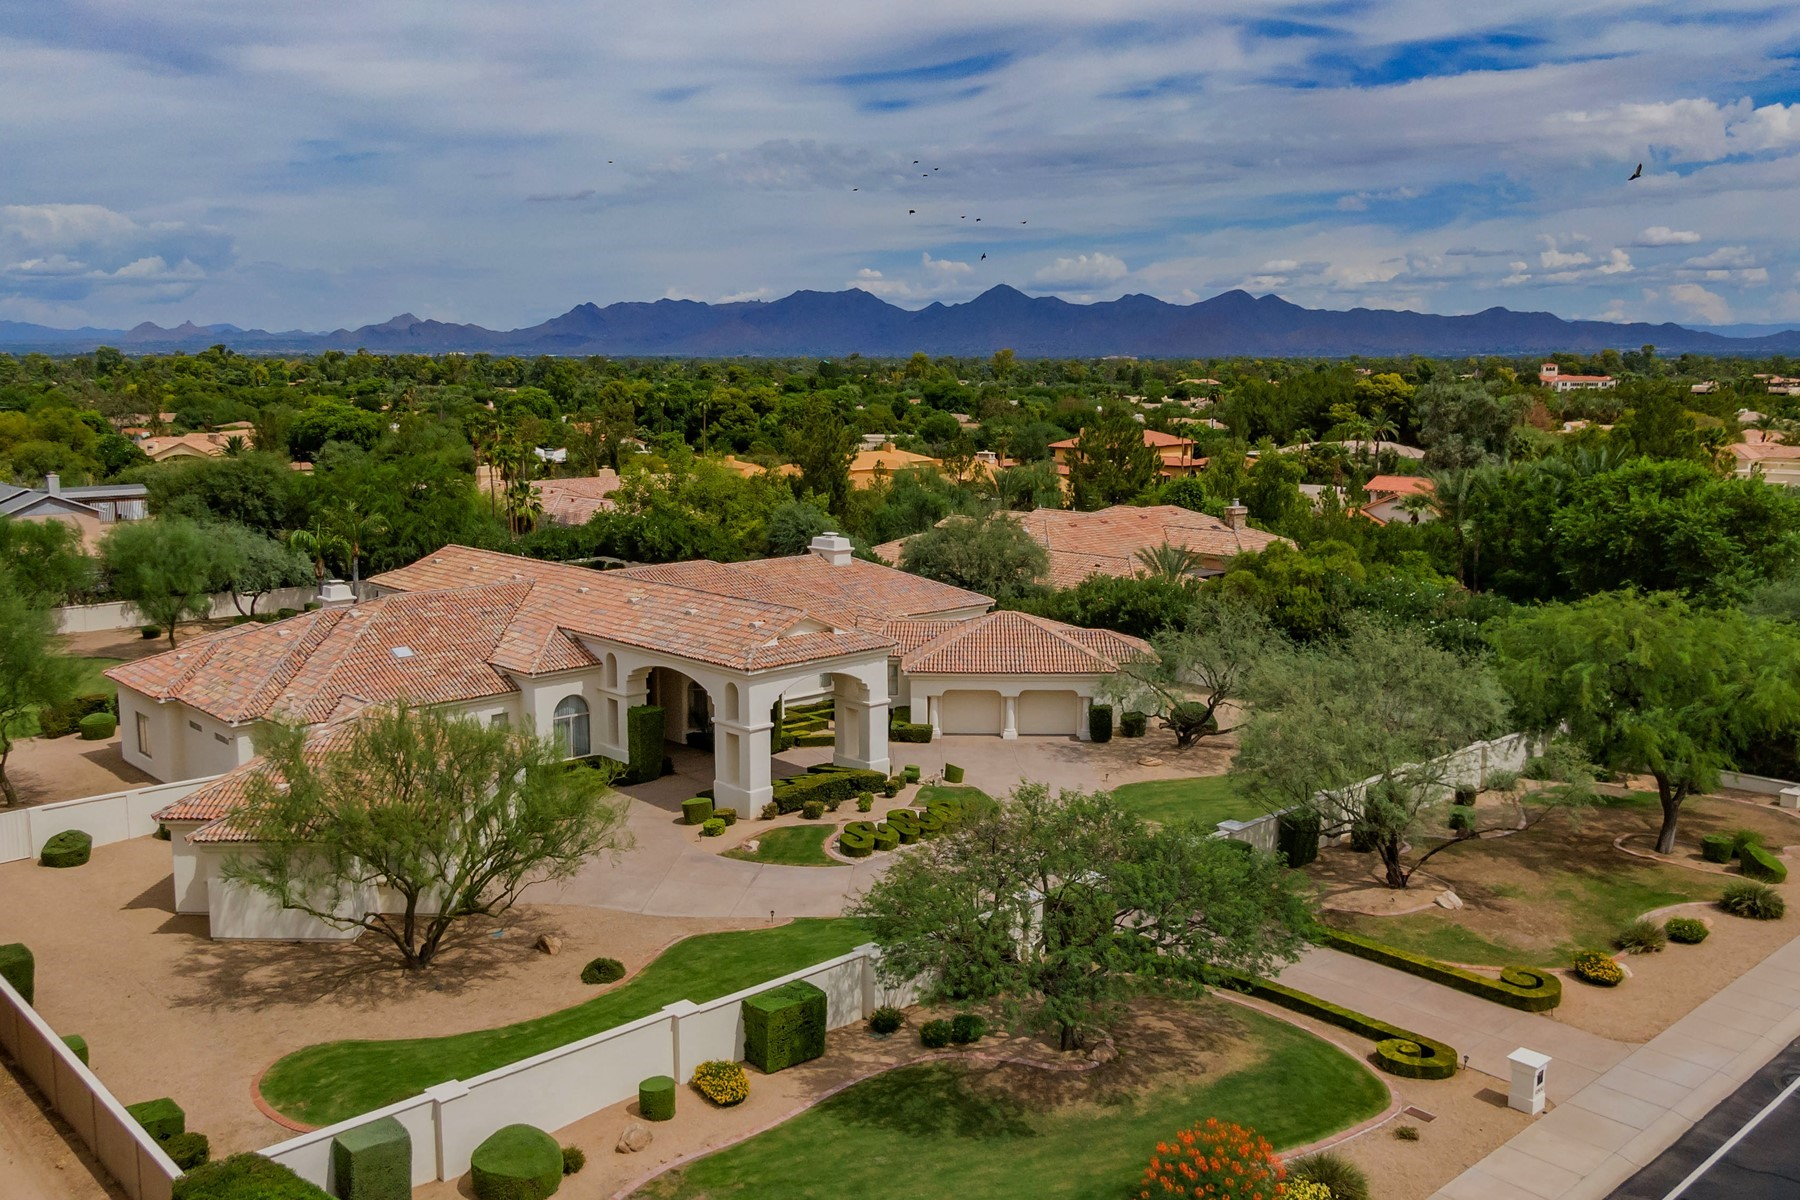 Property for Sale at French Museum Quality Paradise Valley Masterpiece 6900 E Cheney Drive, Paradise Valley, Arizona 85253 United States